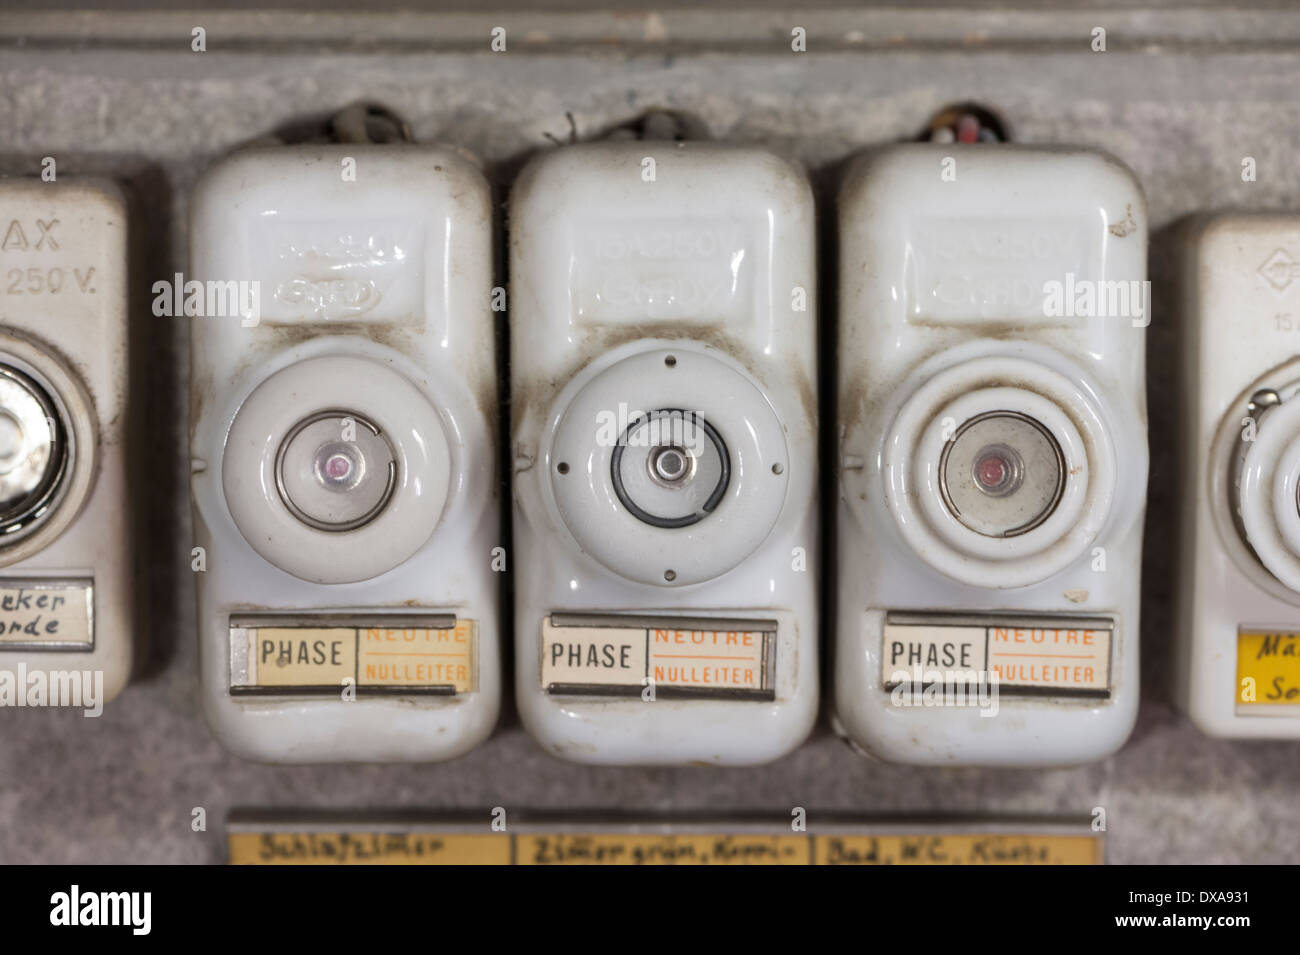 fuse box house stock photos & fuse box house stock images alamy fuse bos close up of an array of old fashioned lead fuses in a household fuse